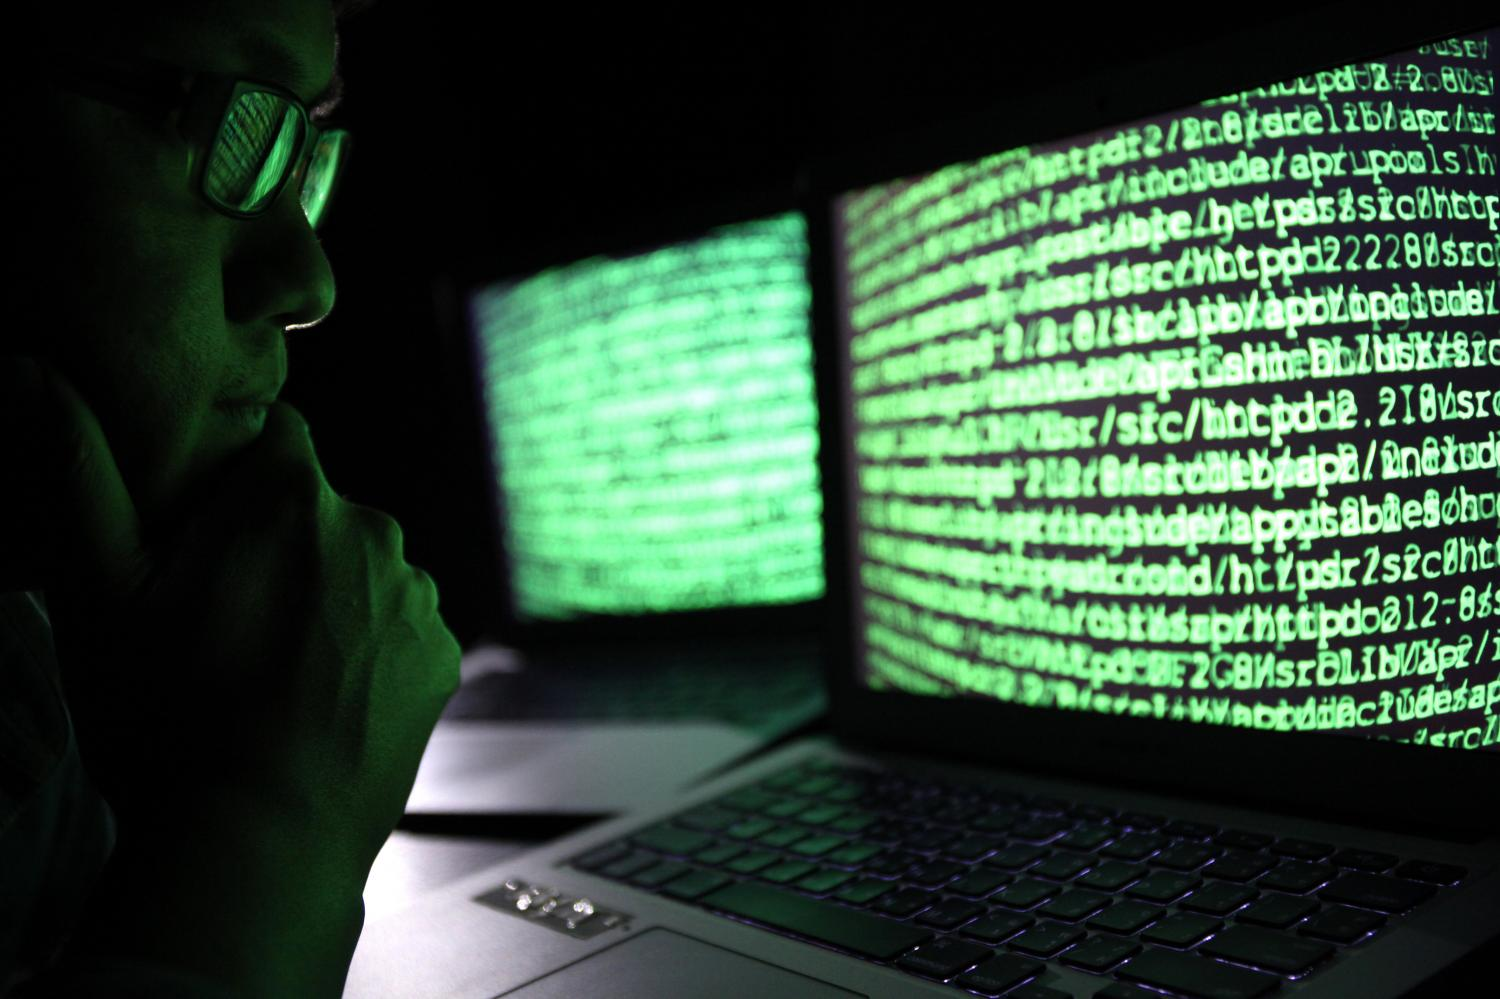 According to the National Cyber Security Agency, at least 200 critical information infrastructures in seven sectors urgently need to adopt necessary measures to guard against cyberattacks.(Photo: Wichan Charoenkiatpakul)